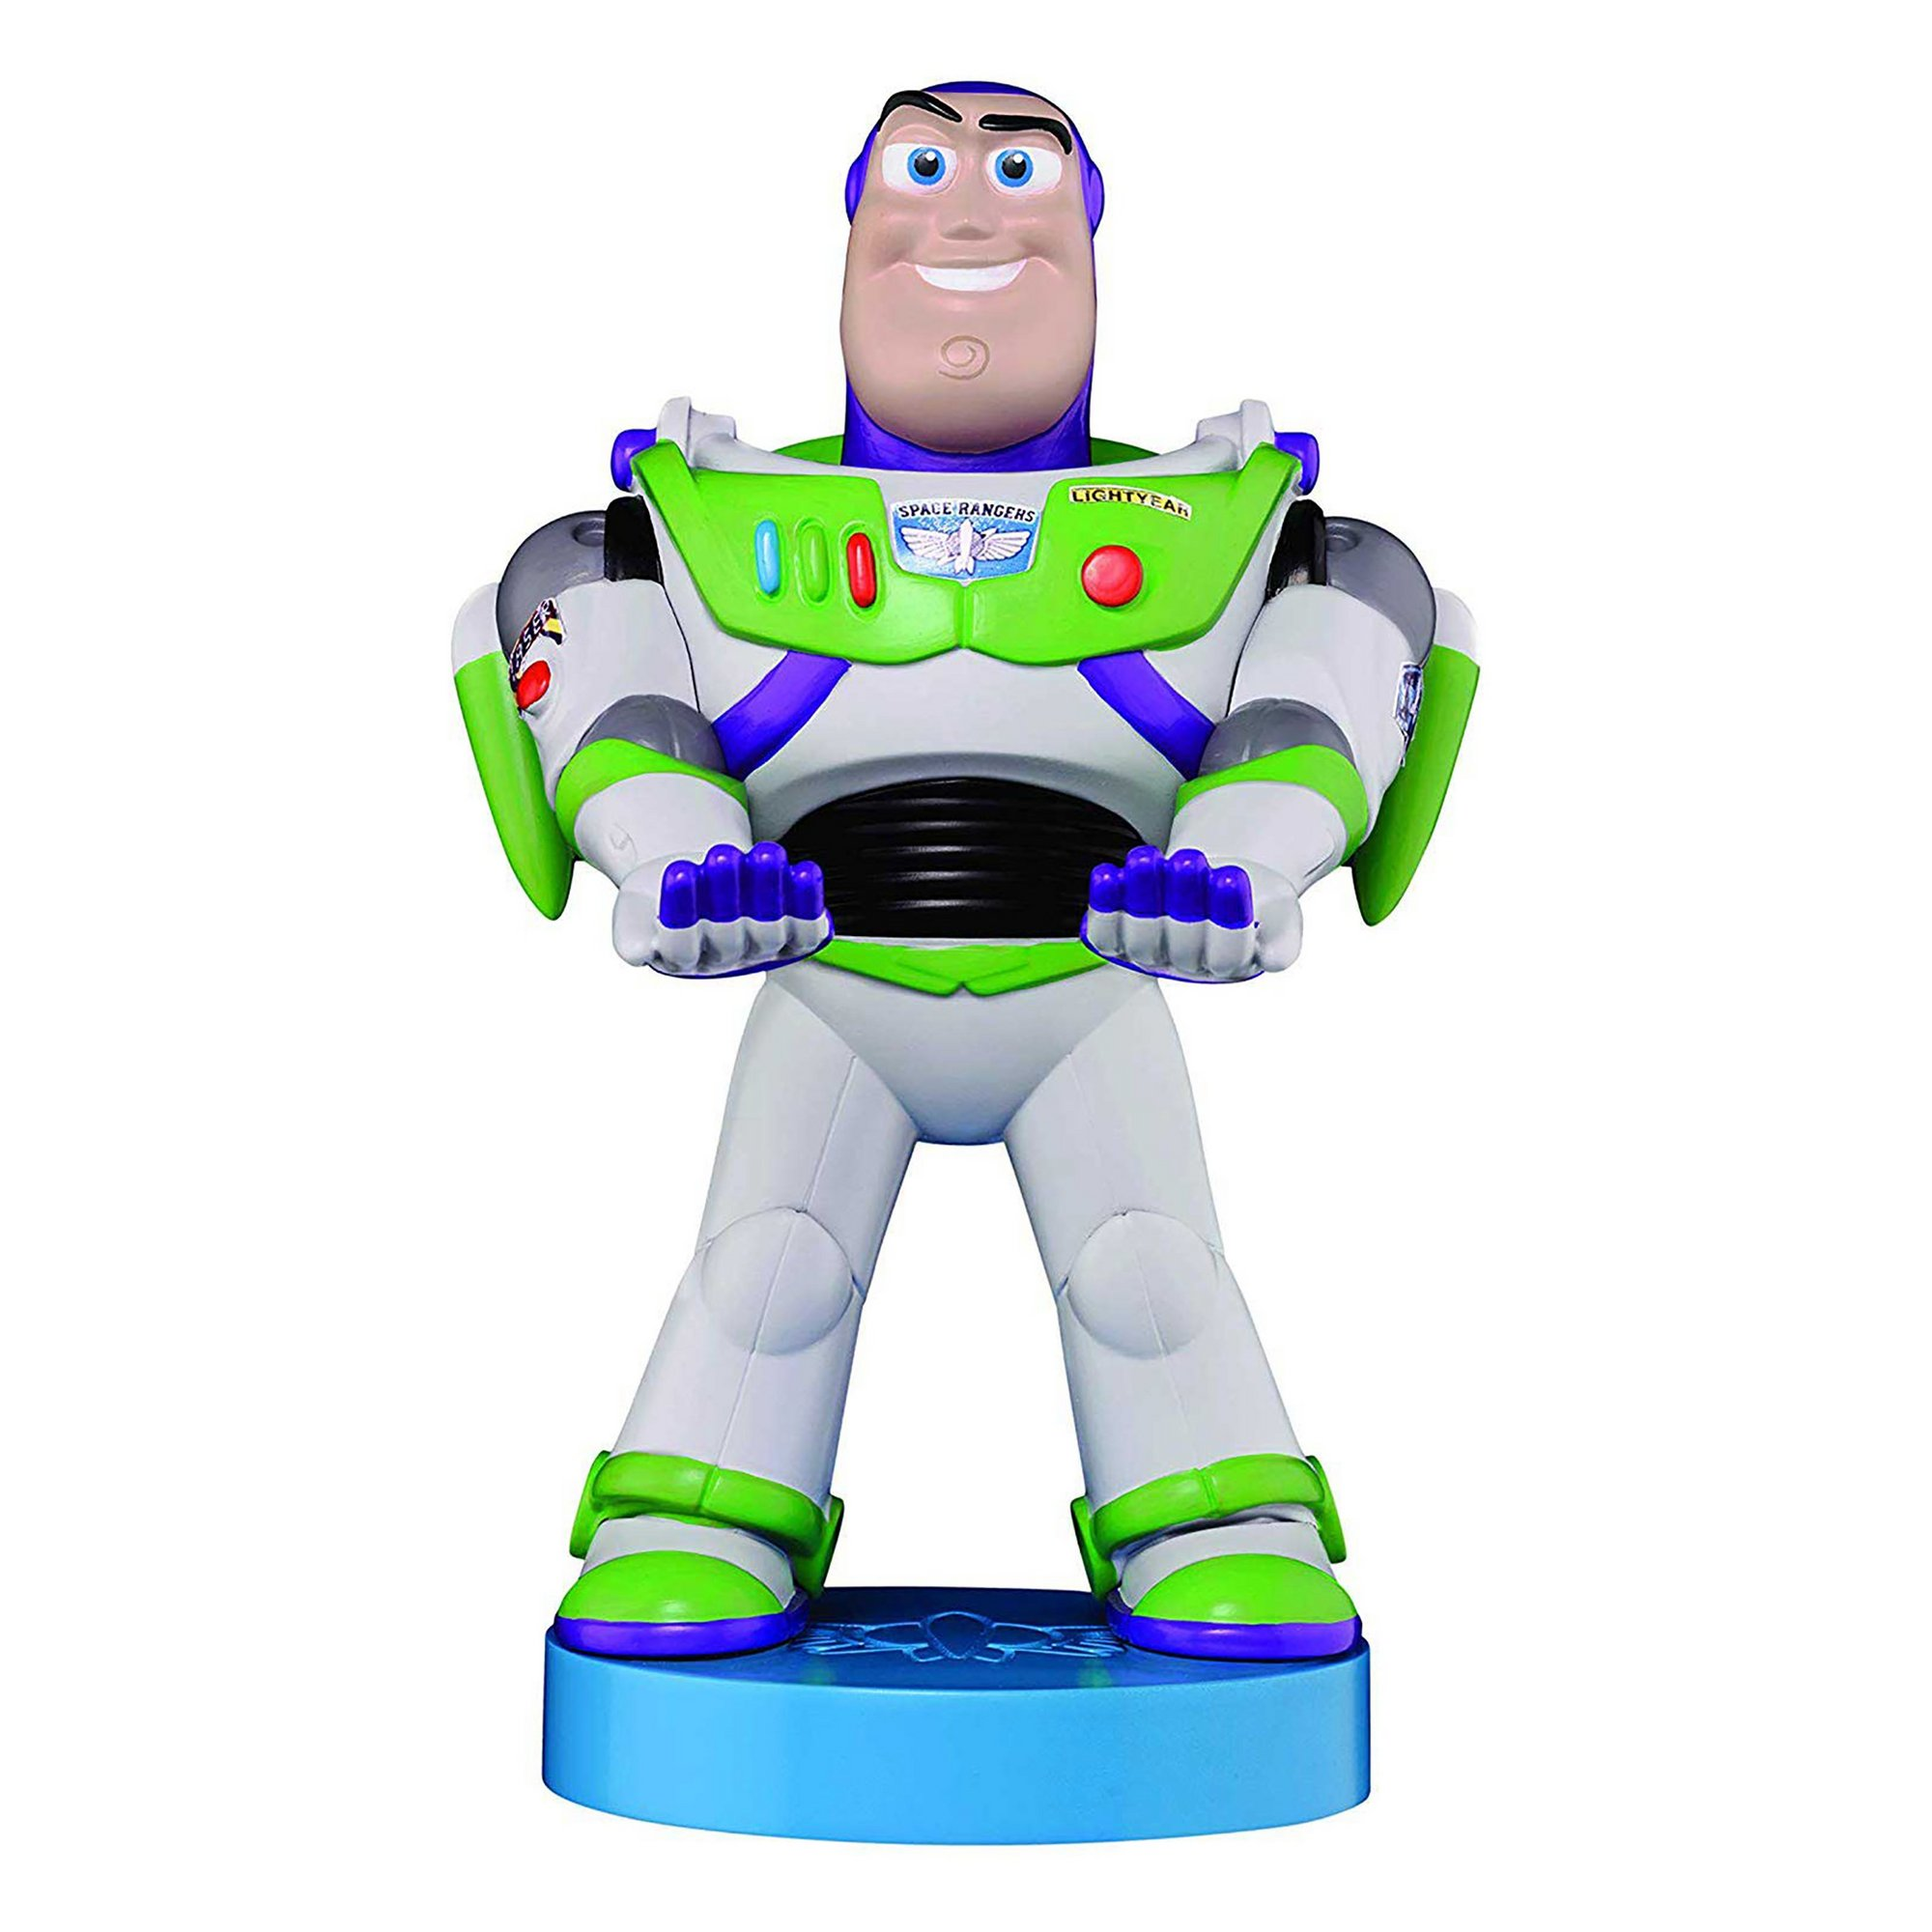 Image of Buzz Lightyear Cable Guy